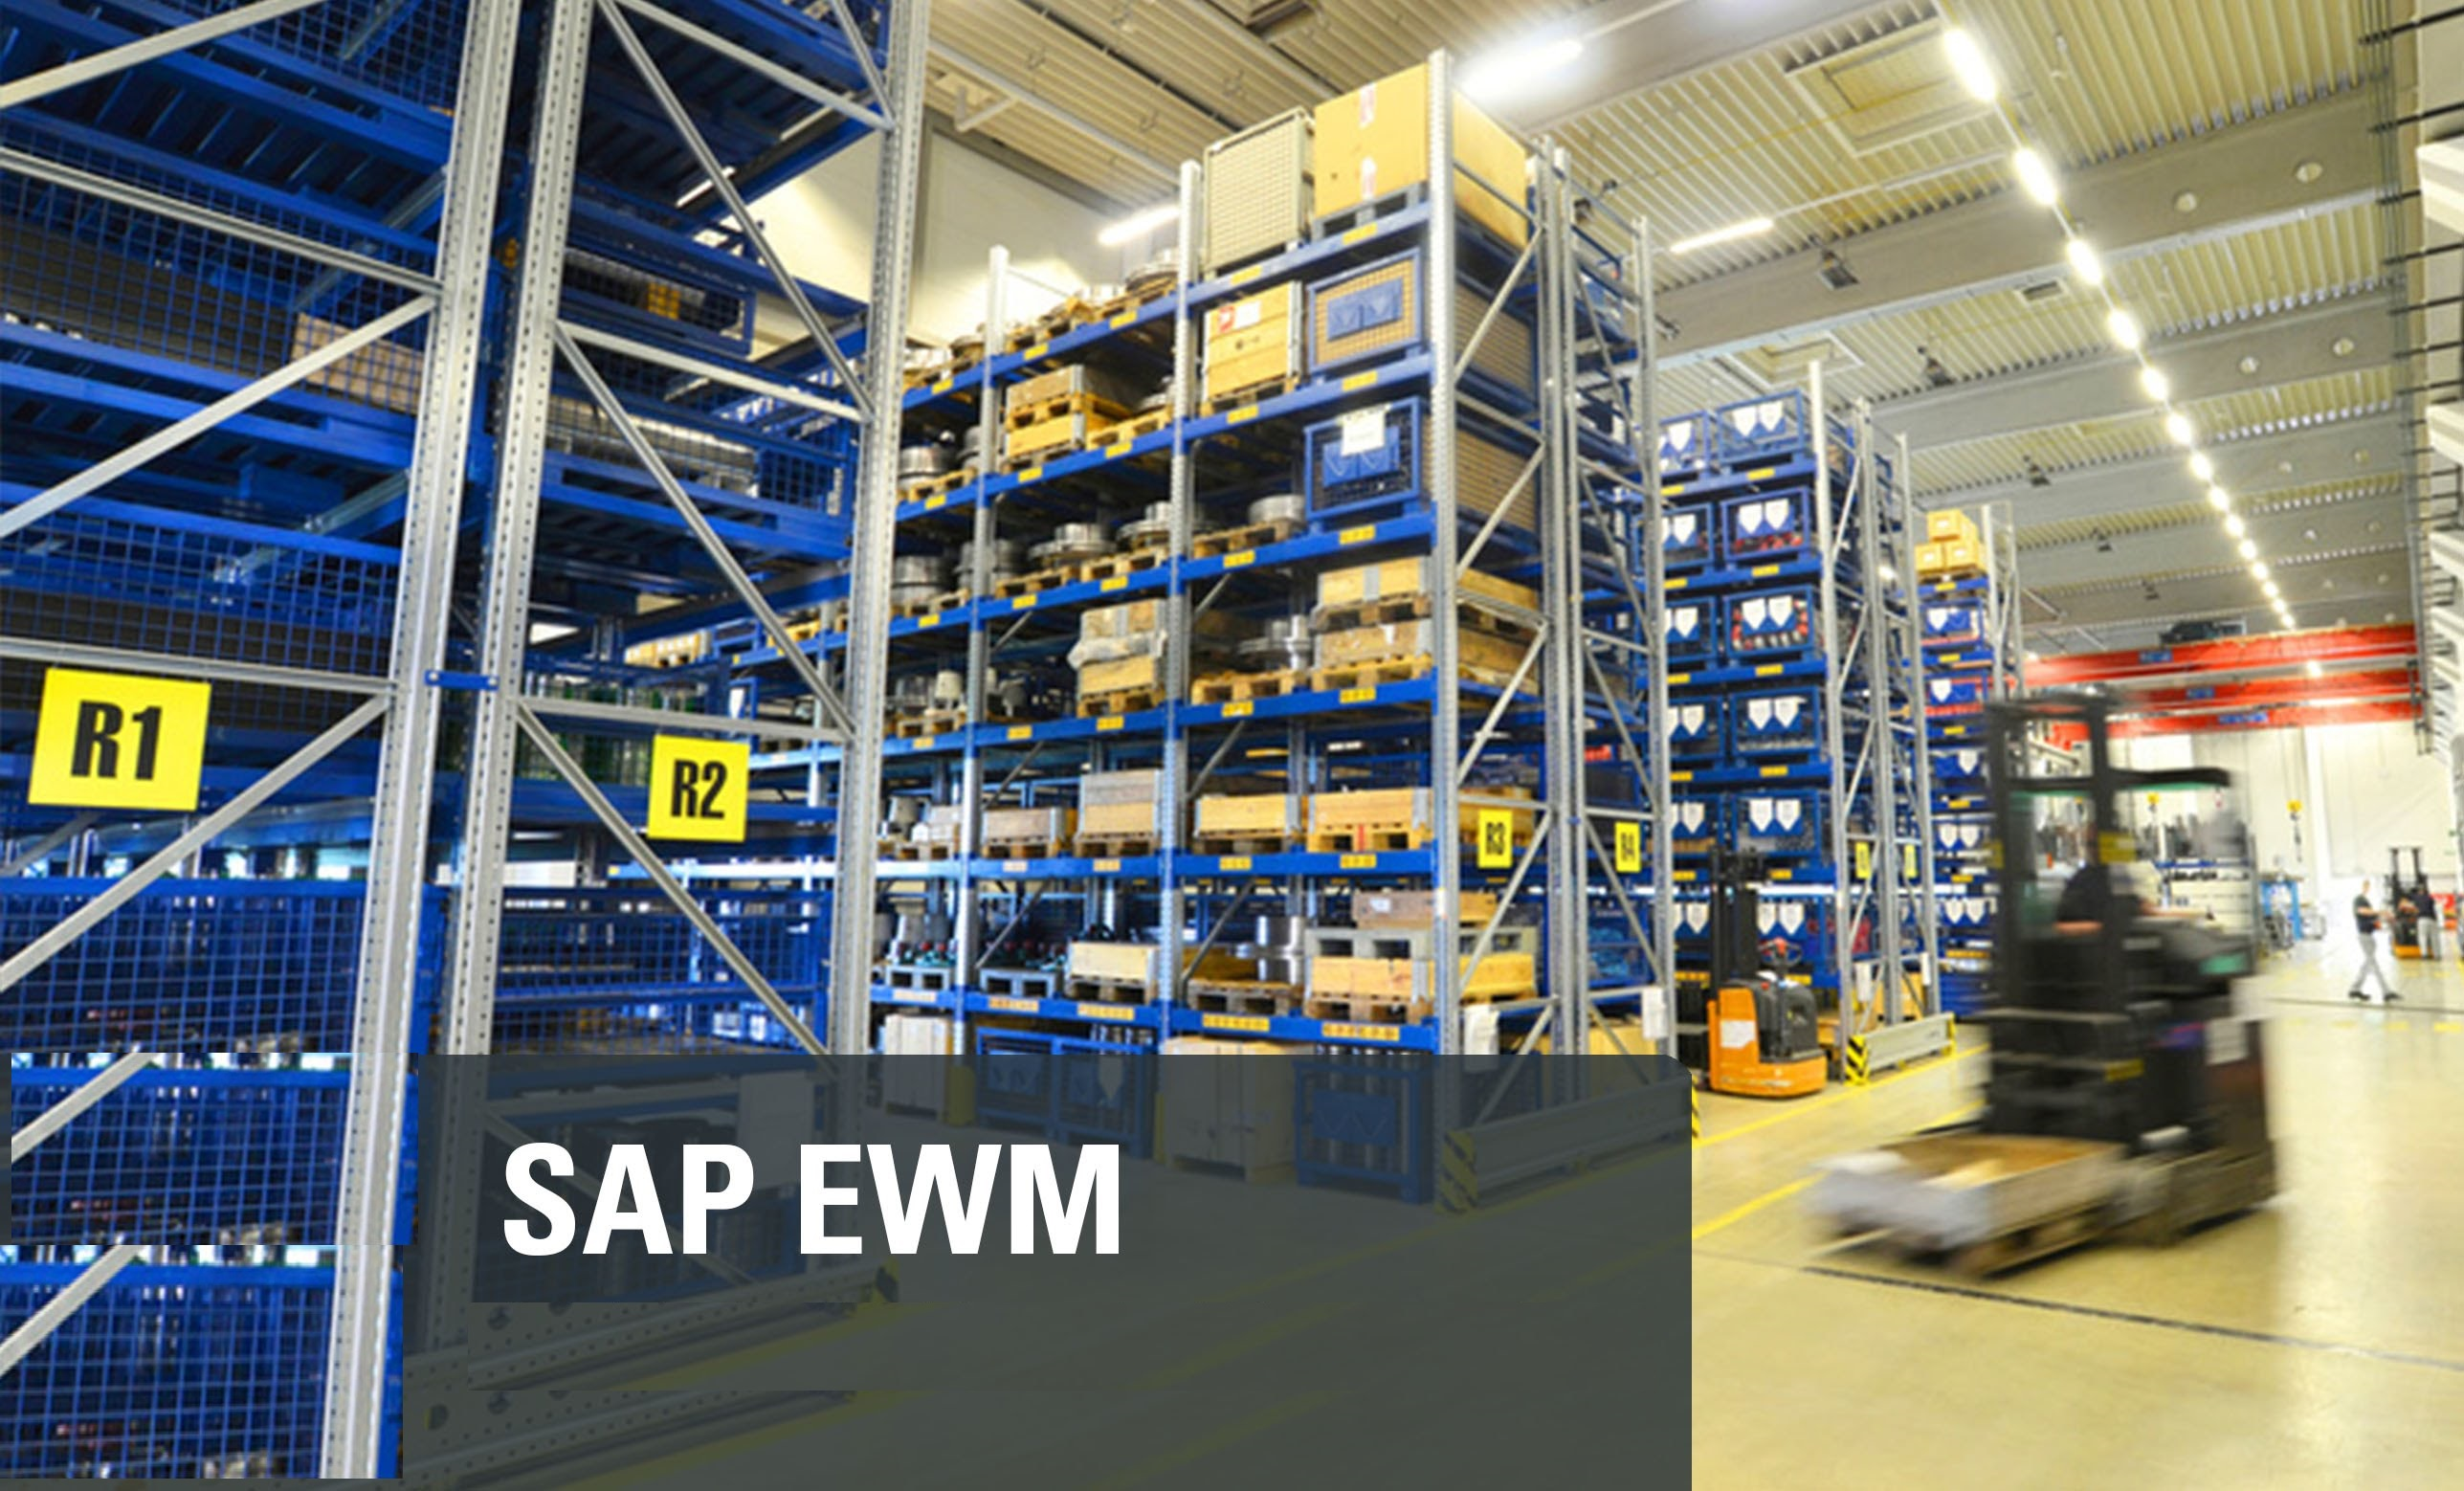 SAP EWM BATCH MANAGEMENT CONFIGURATION | knowasap